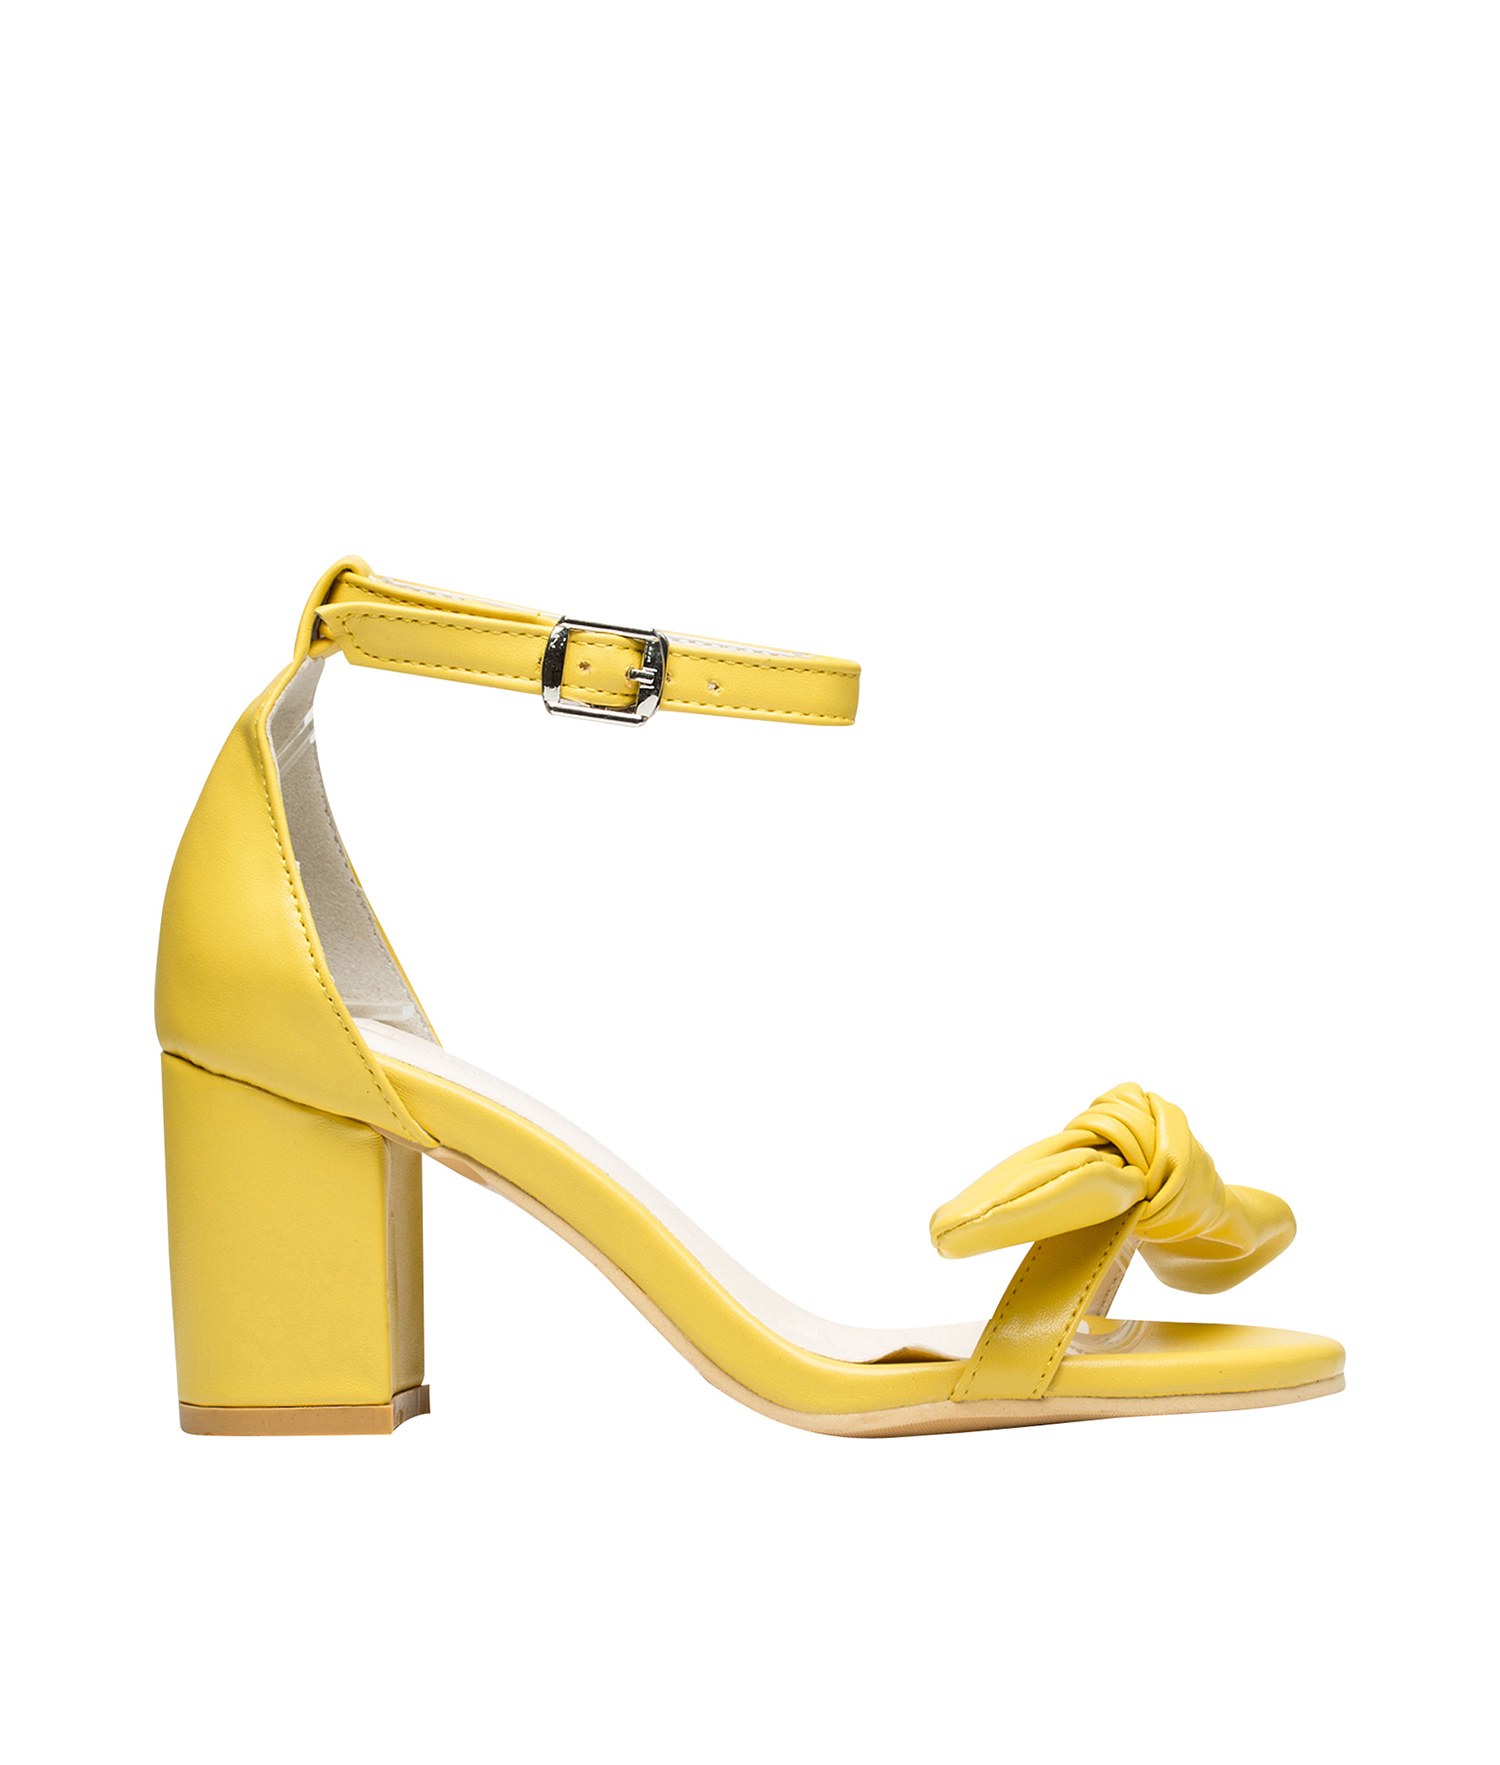 AnnaKastle Womens Bowknot Ankle Strap Chunky Mid Heel Sandals Yellow